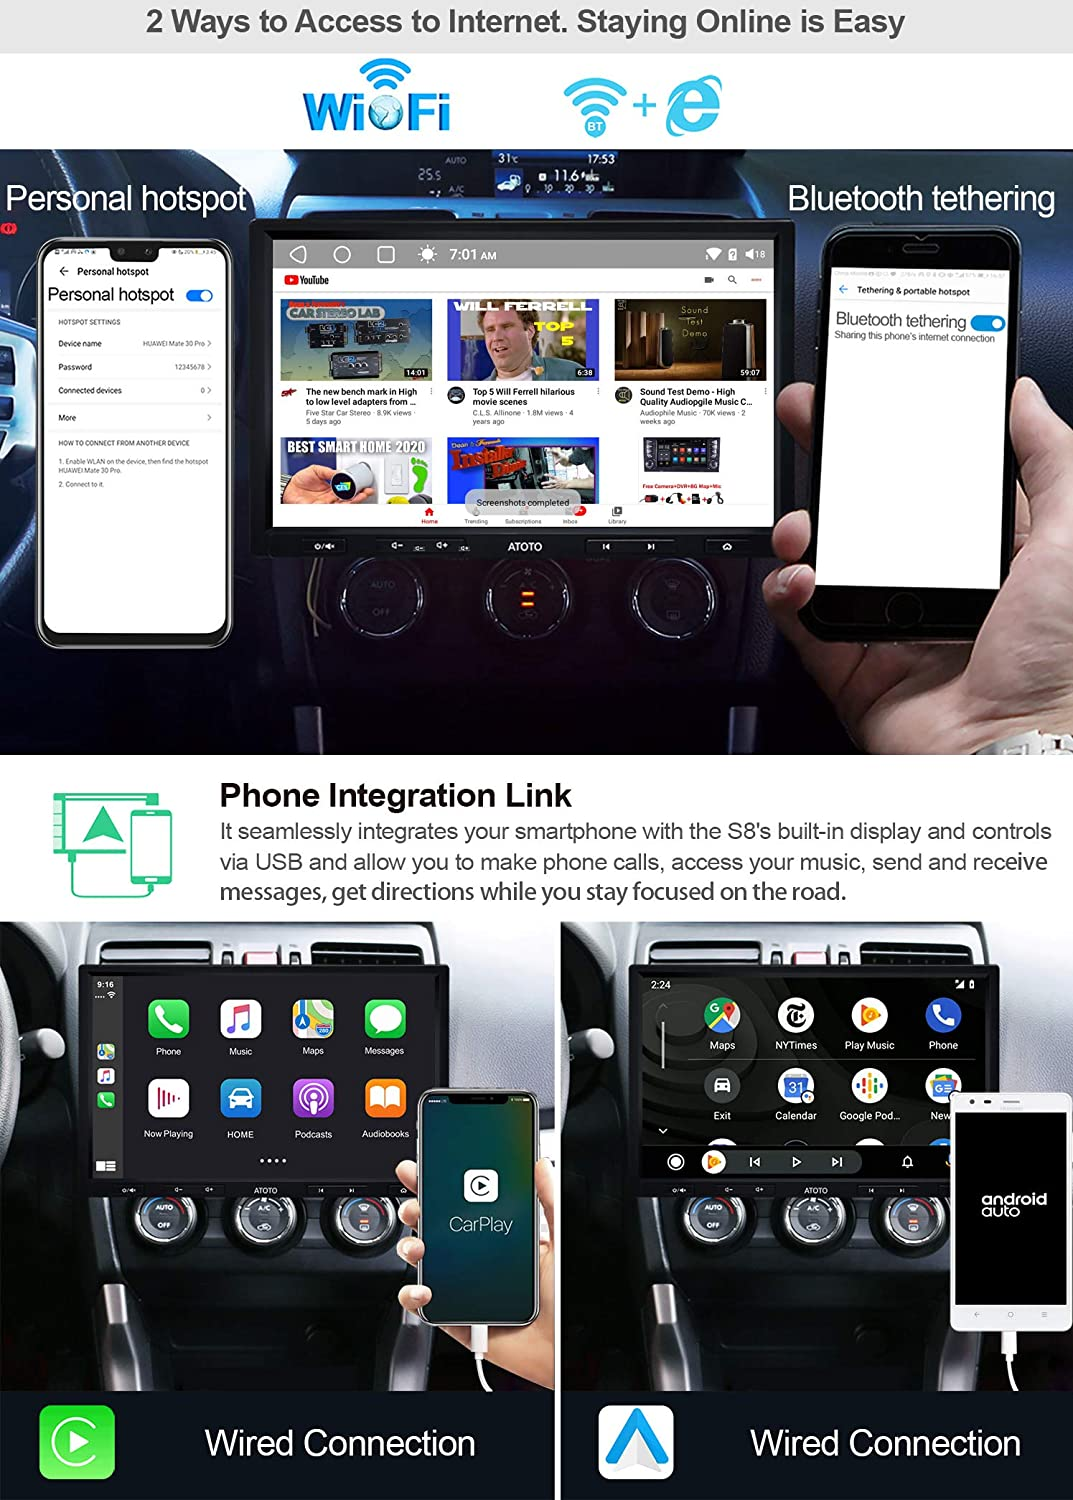 ATOTO S8 Premium S8G2103M in-Dash Navigation//Android Headunit,Octa-Core CPU Dual BT with aptX,Phone Link,QLED Display,VSV Parking,Support 512GB SD and More 10in Floating Display